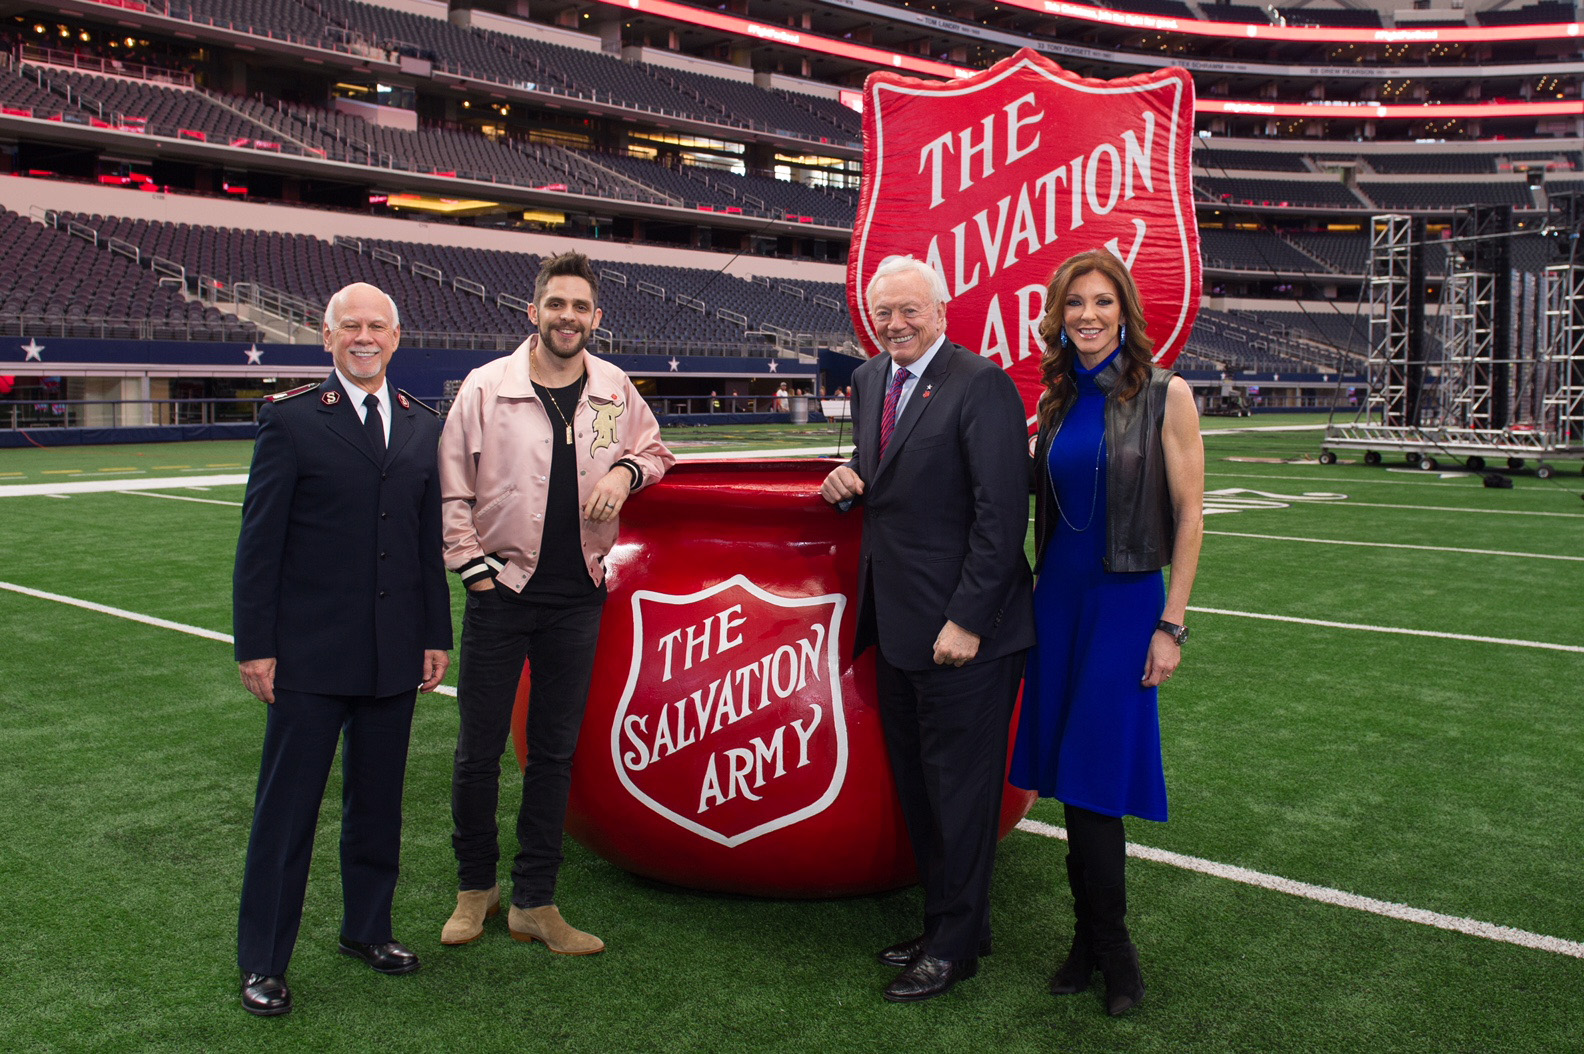 Commissioner David Hudson of The Salvation Army, Red Kettle Kickoff artist Thomas Rhett, Jerry Jones and Charlotte Jones Anderson of the Dallas Cowboys